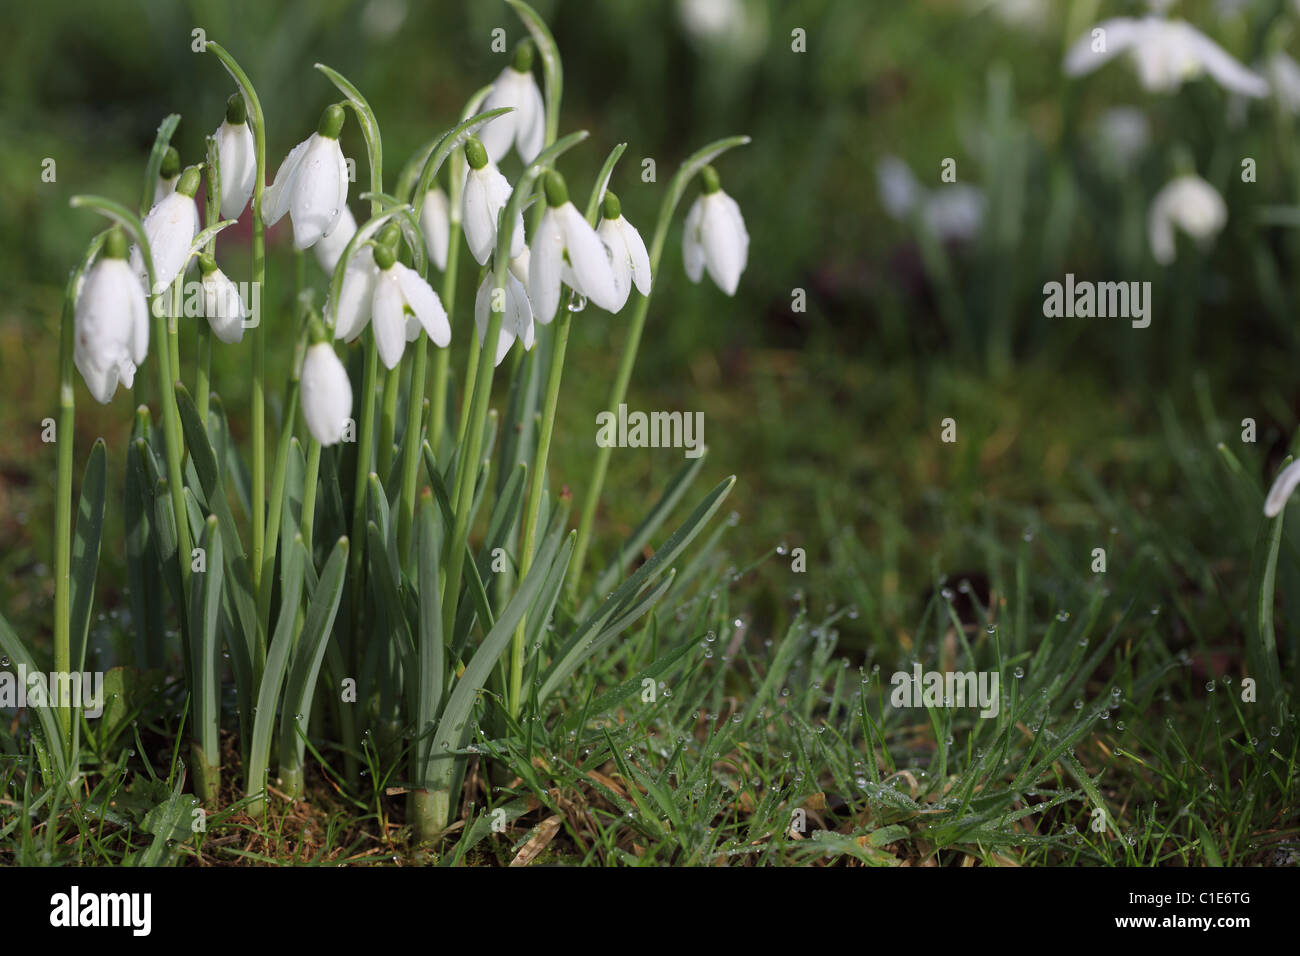 Close up of Snowdrops flowering in the grass - Stock Image